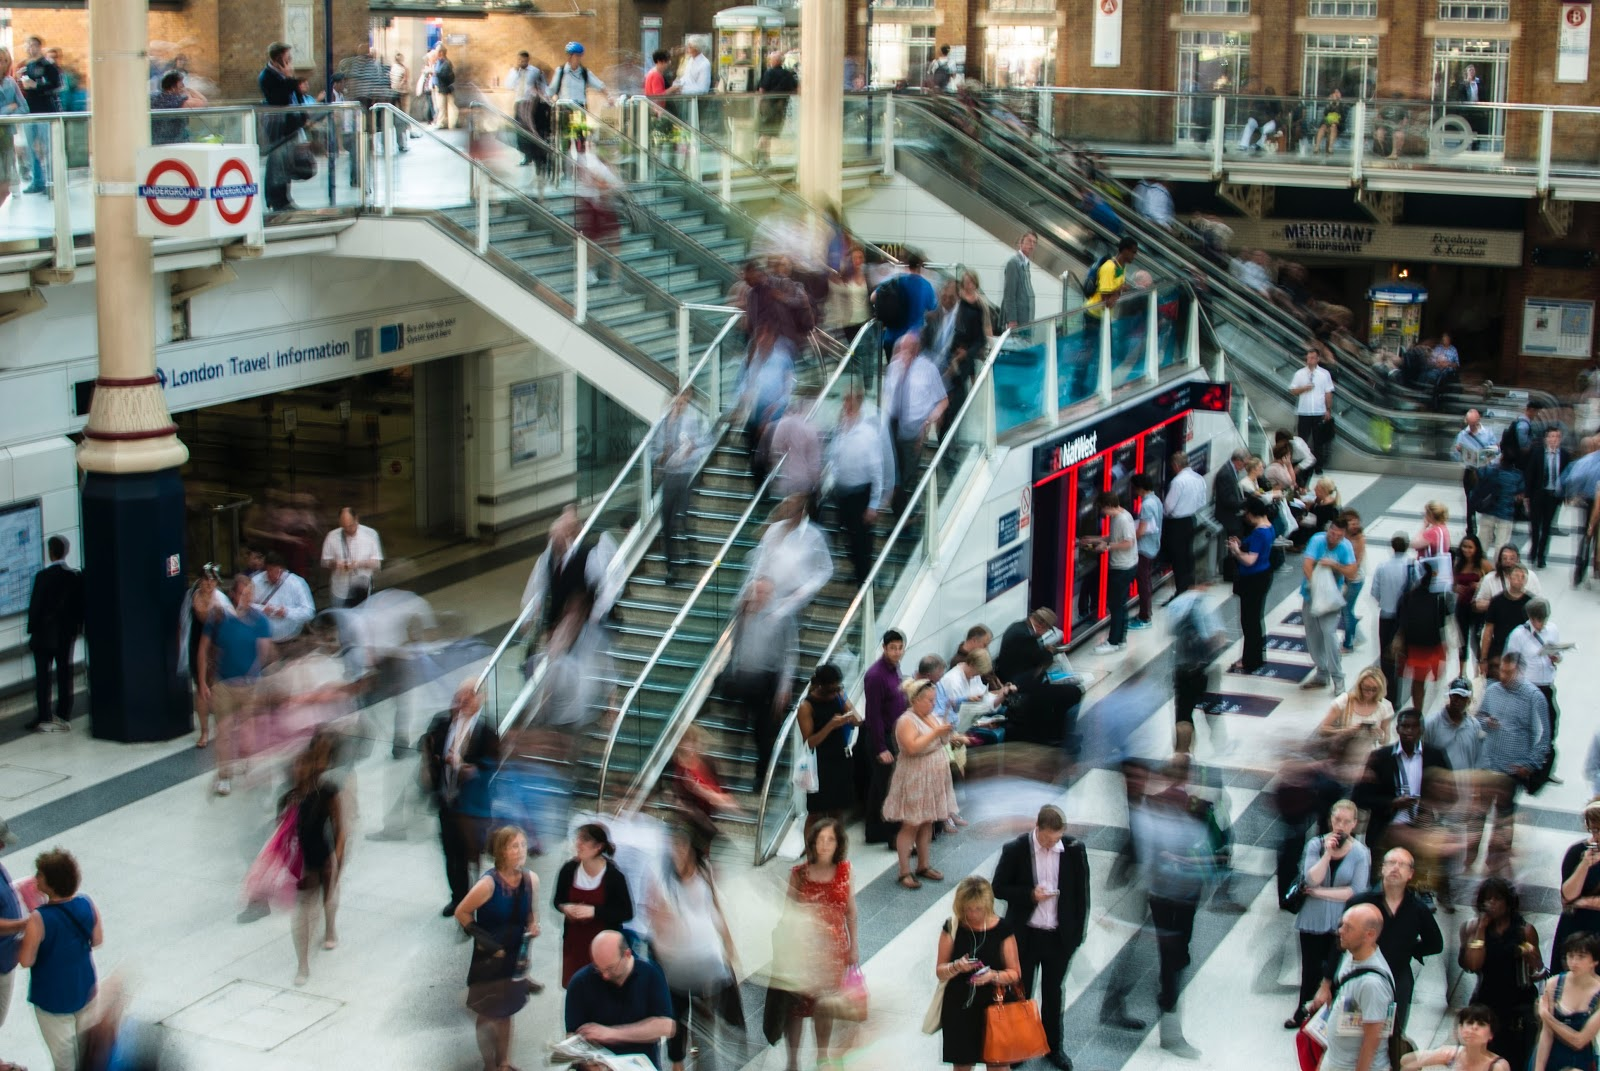 People rushing in the mall